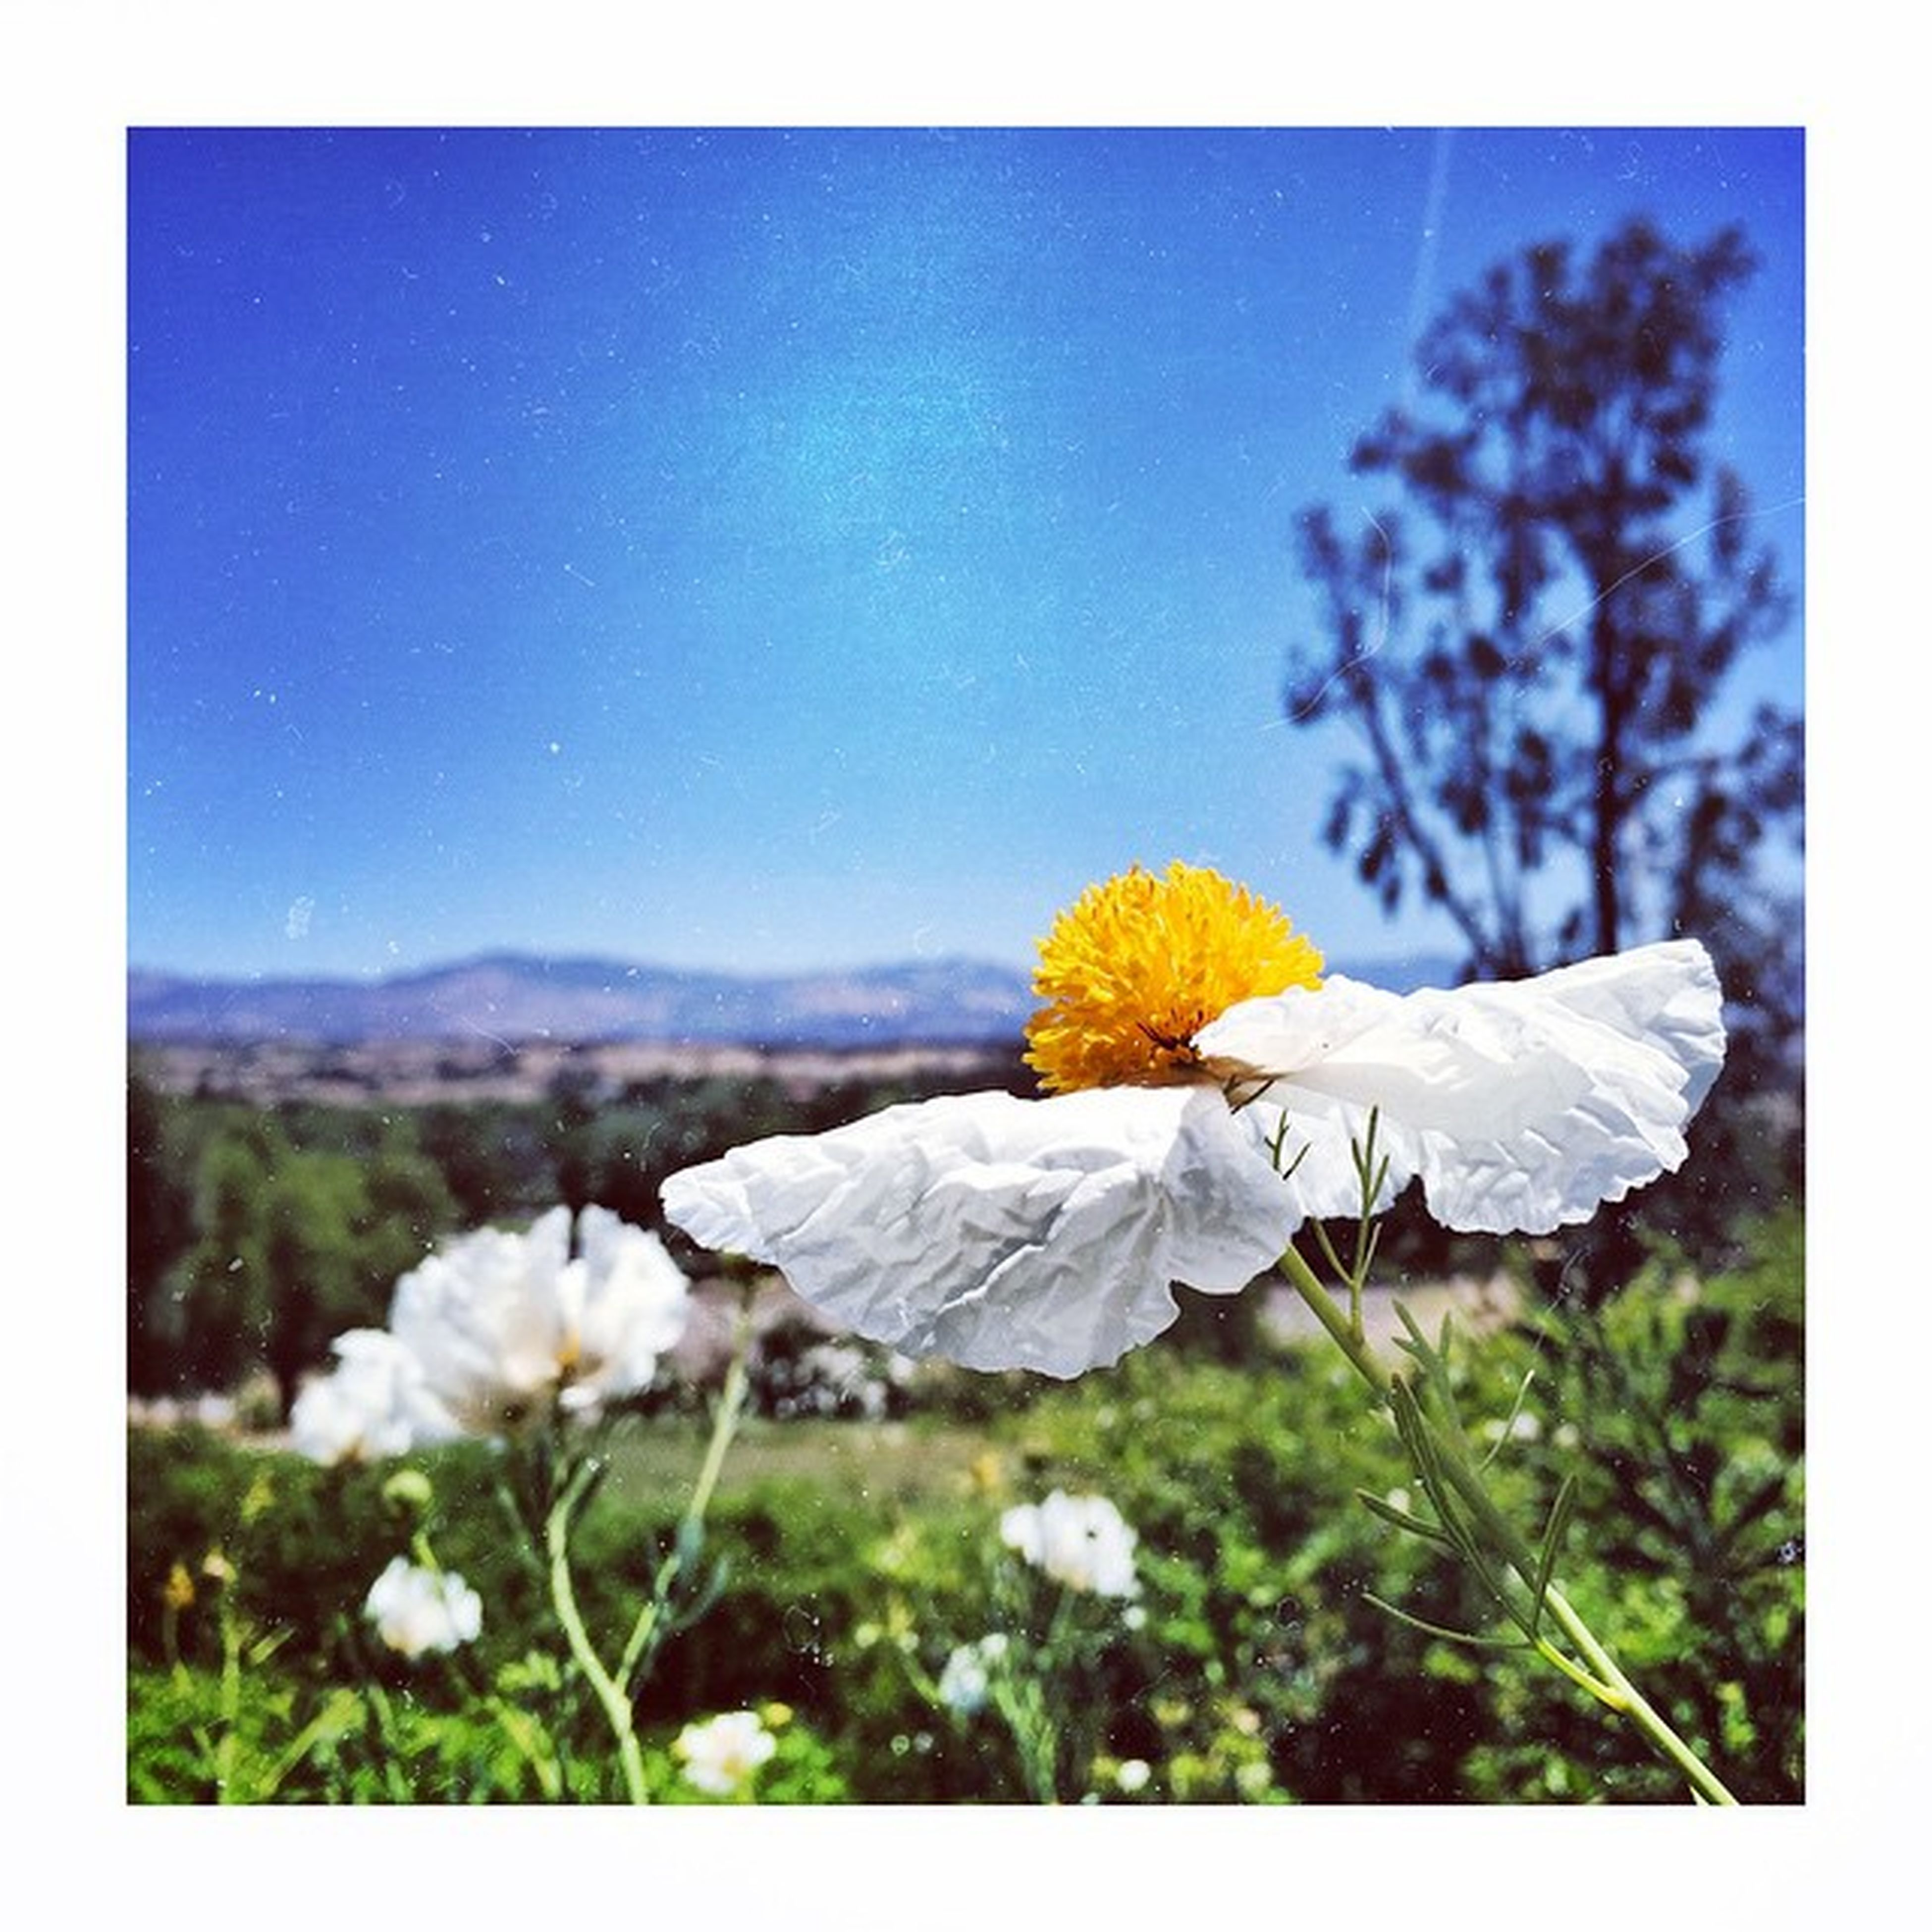 Enjoying my Sunday off in the beautiful Santaynezvalley Flower